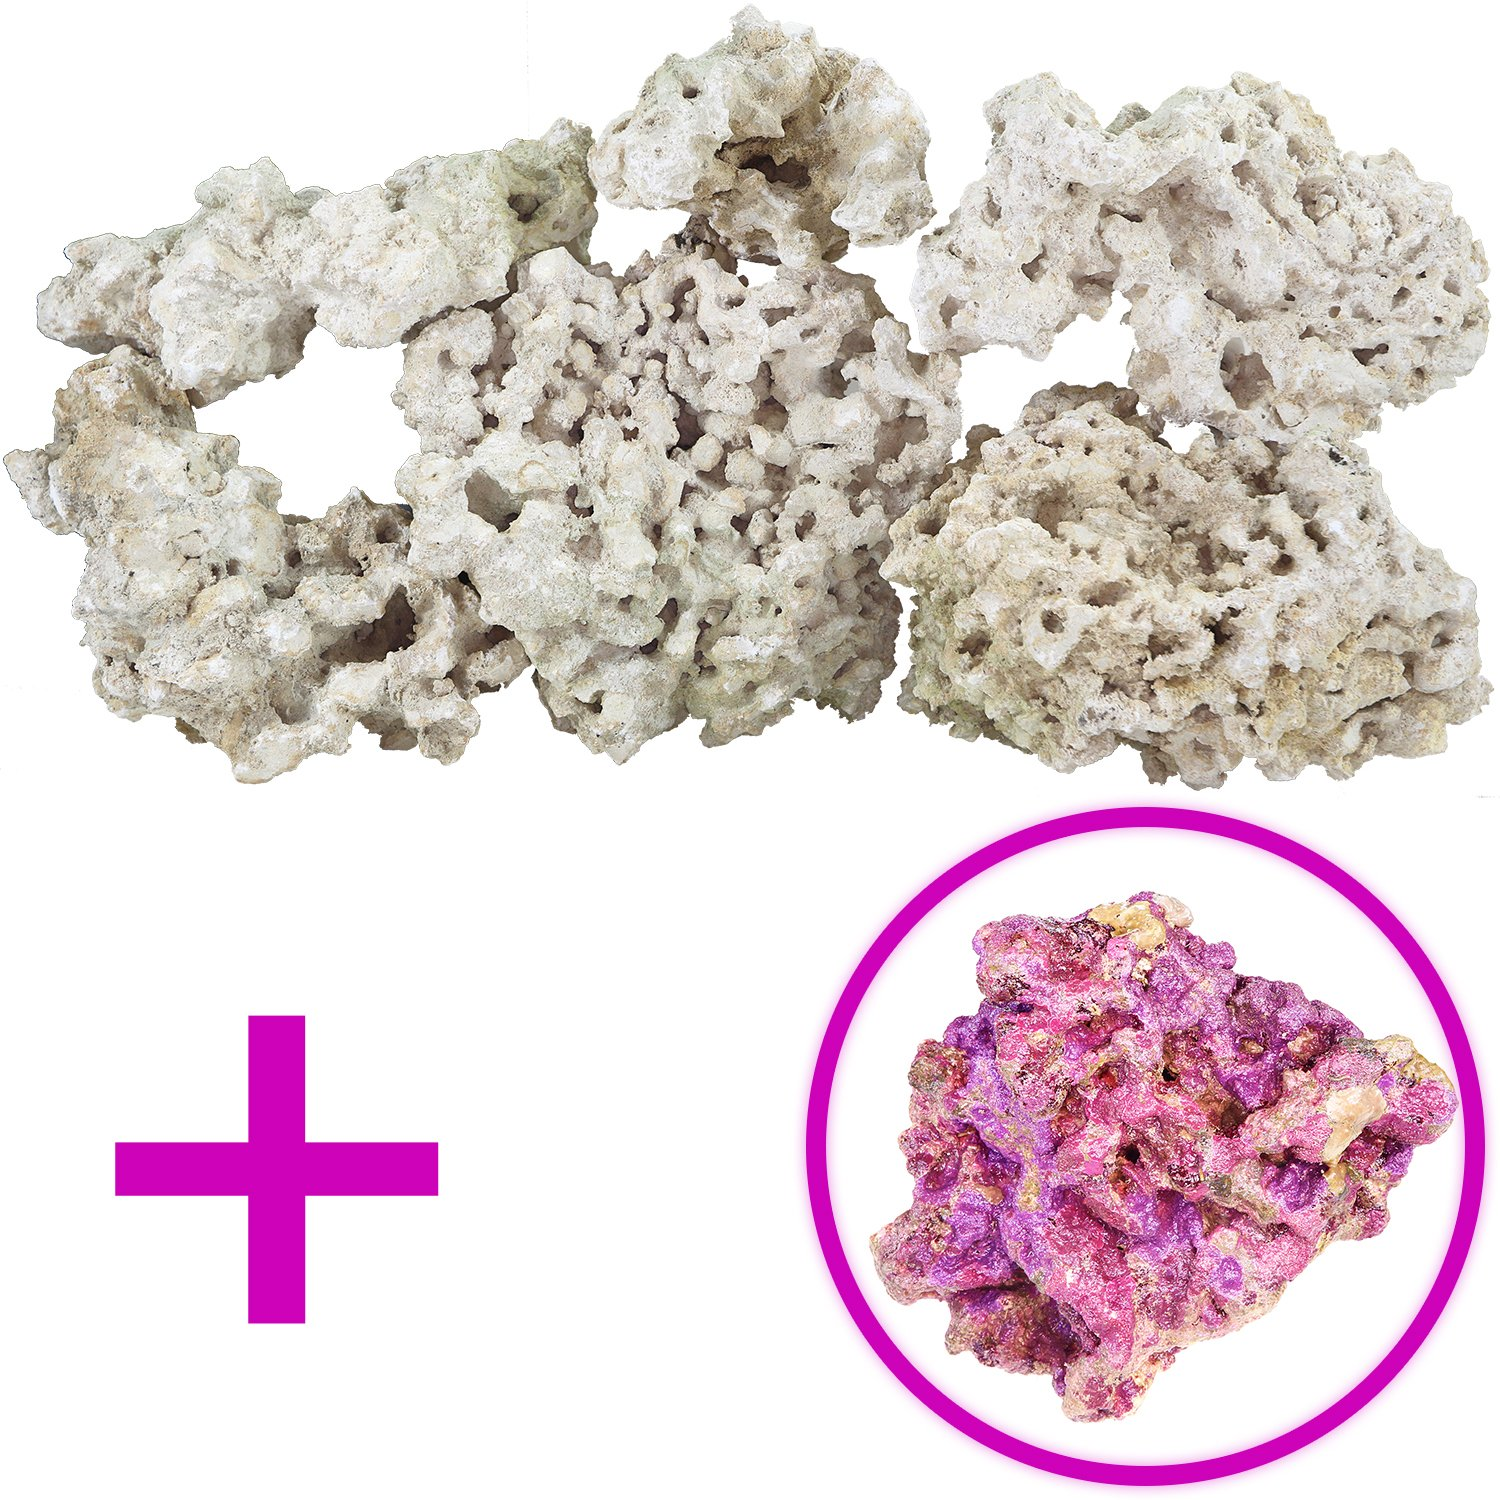 Dry Base Rock With Coralline Algae Bonus Rock For Saltwater Aquariums, 25 lbs.